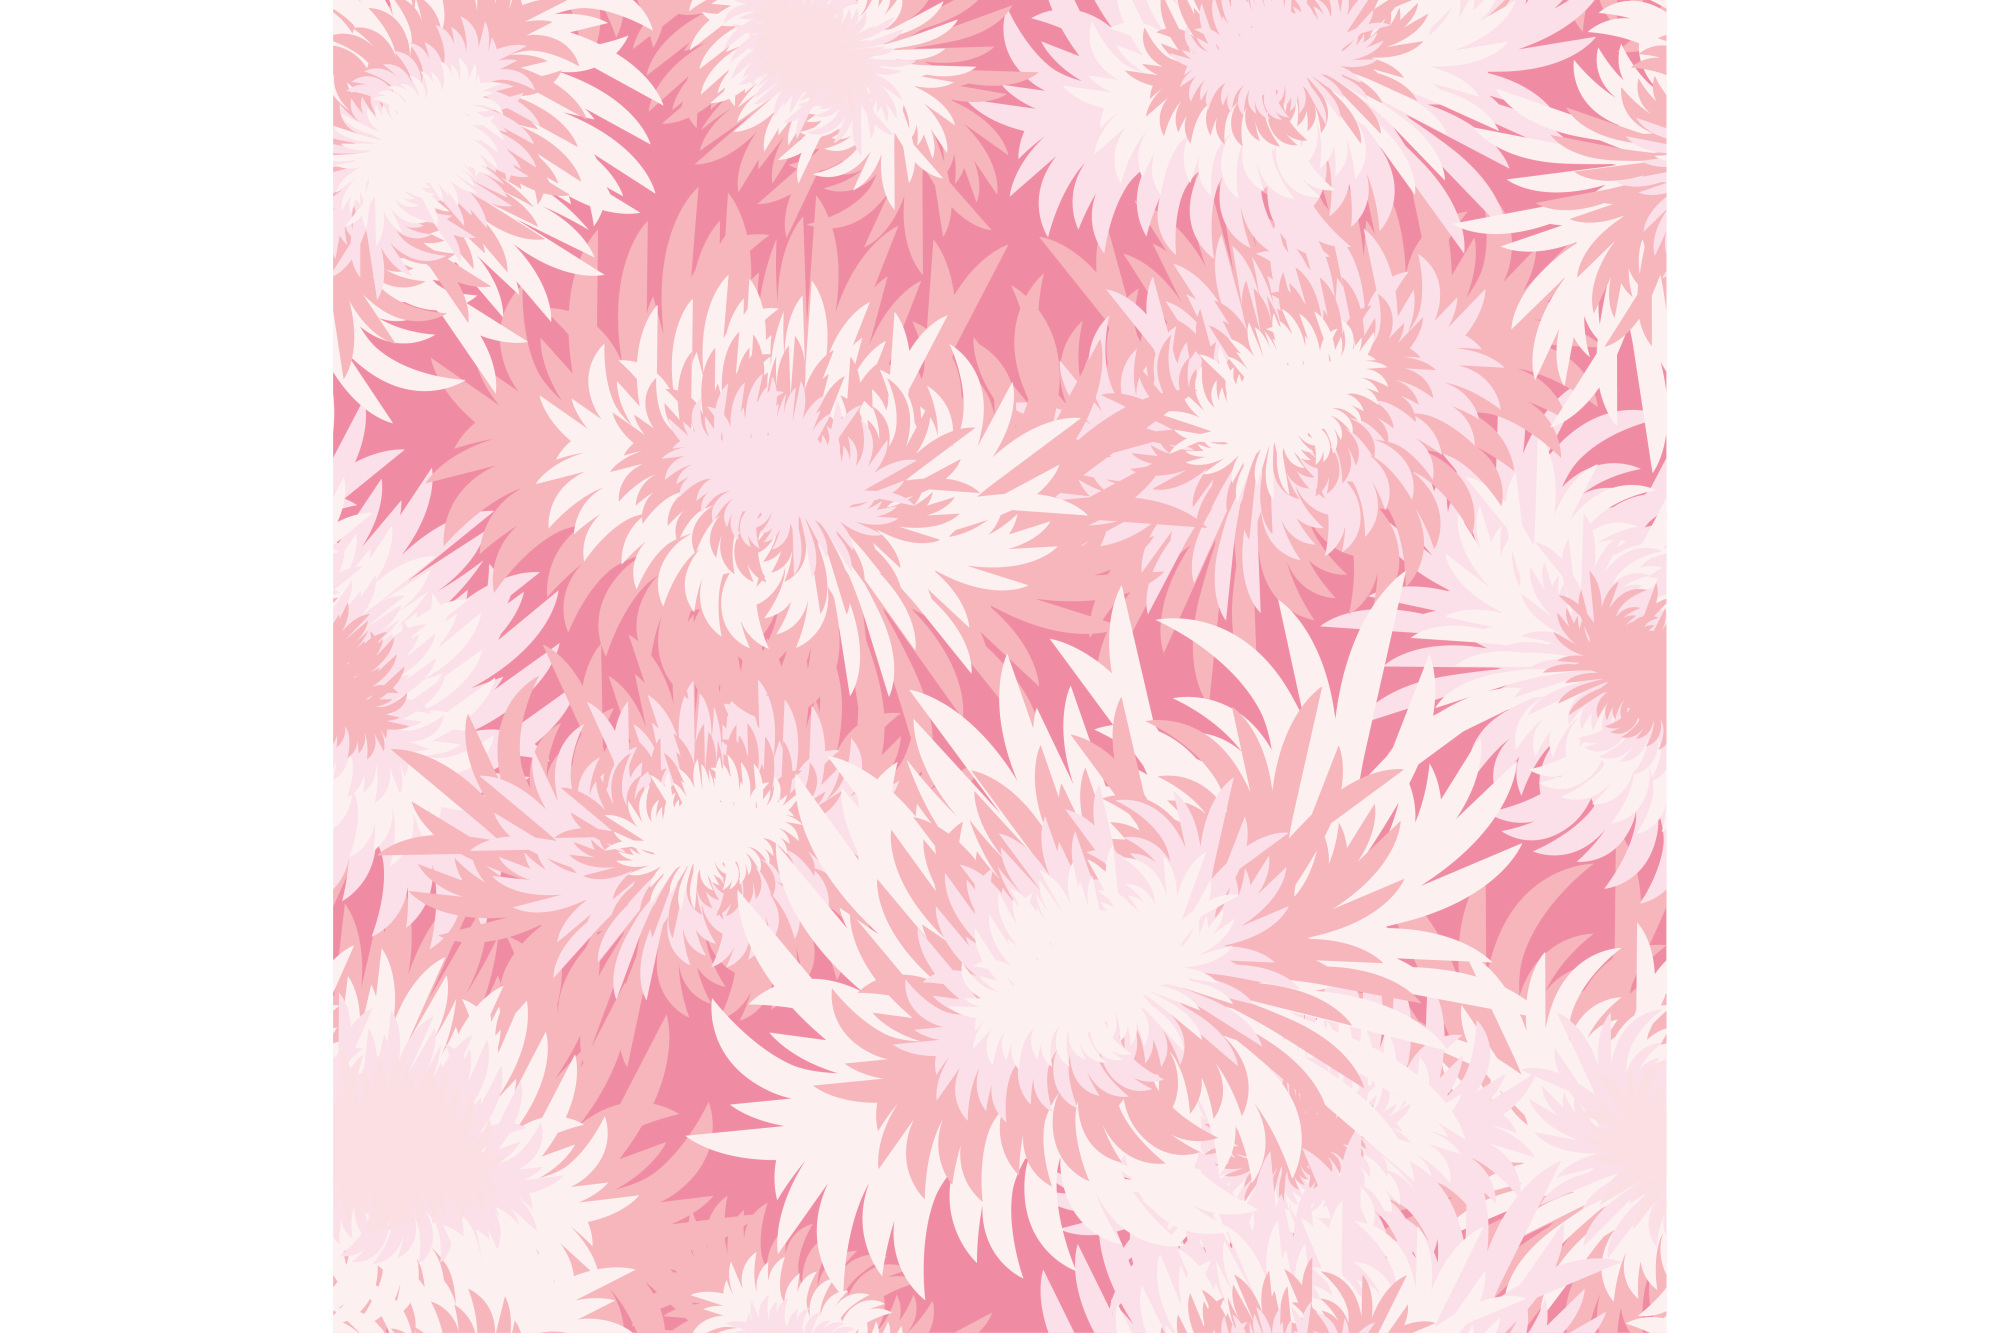 Seamless decorative vector background with chrysanthemums. example image 1